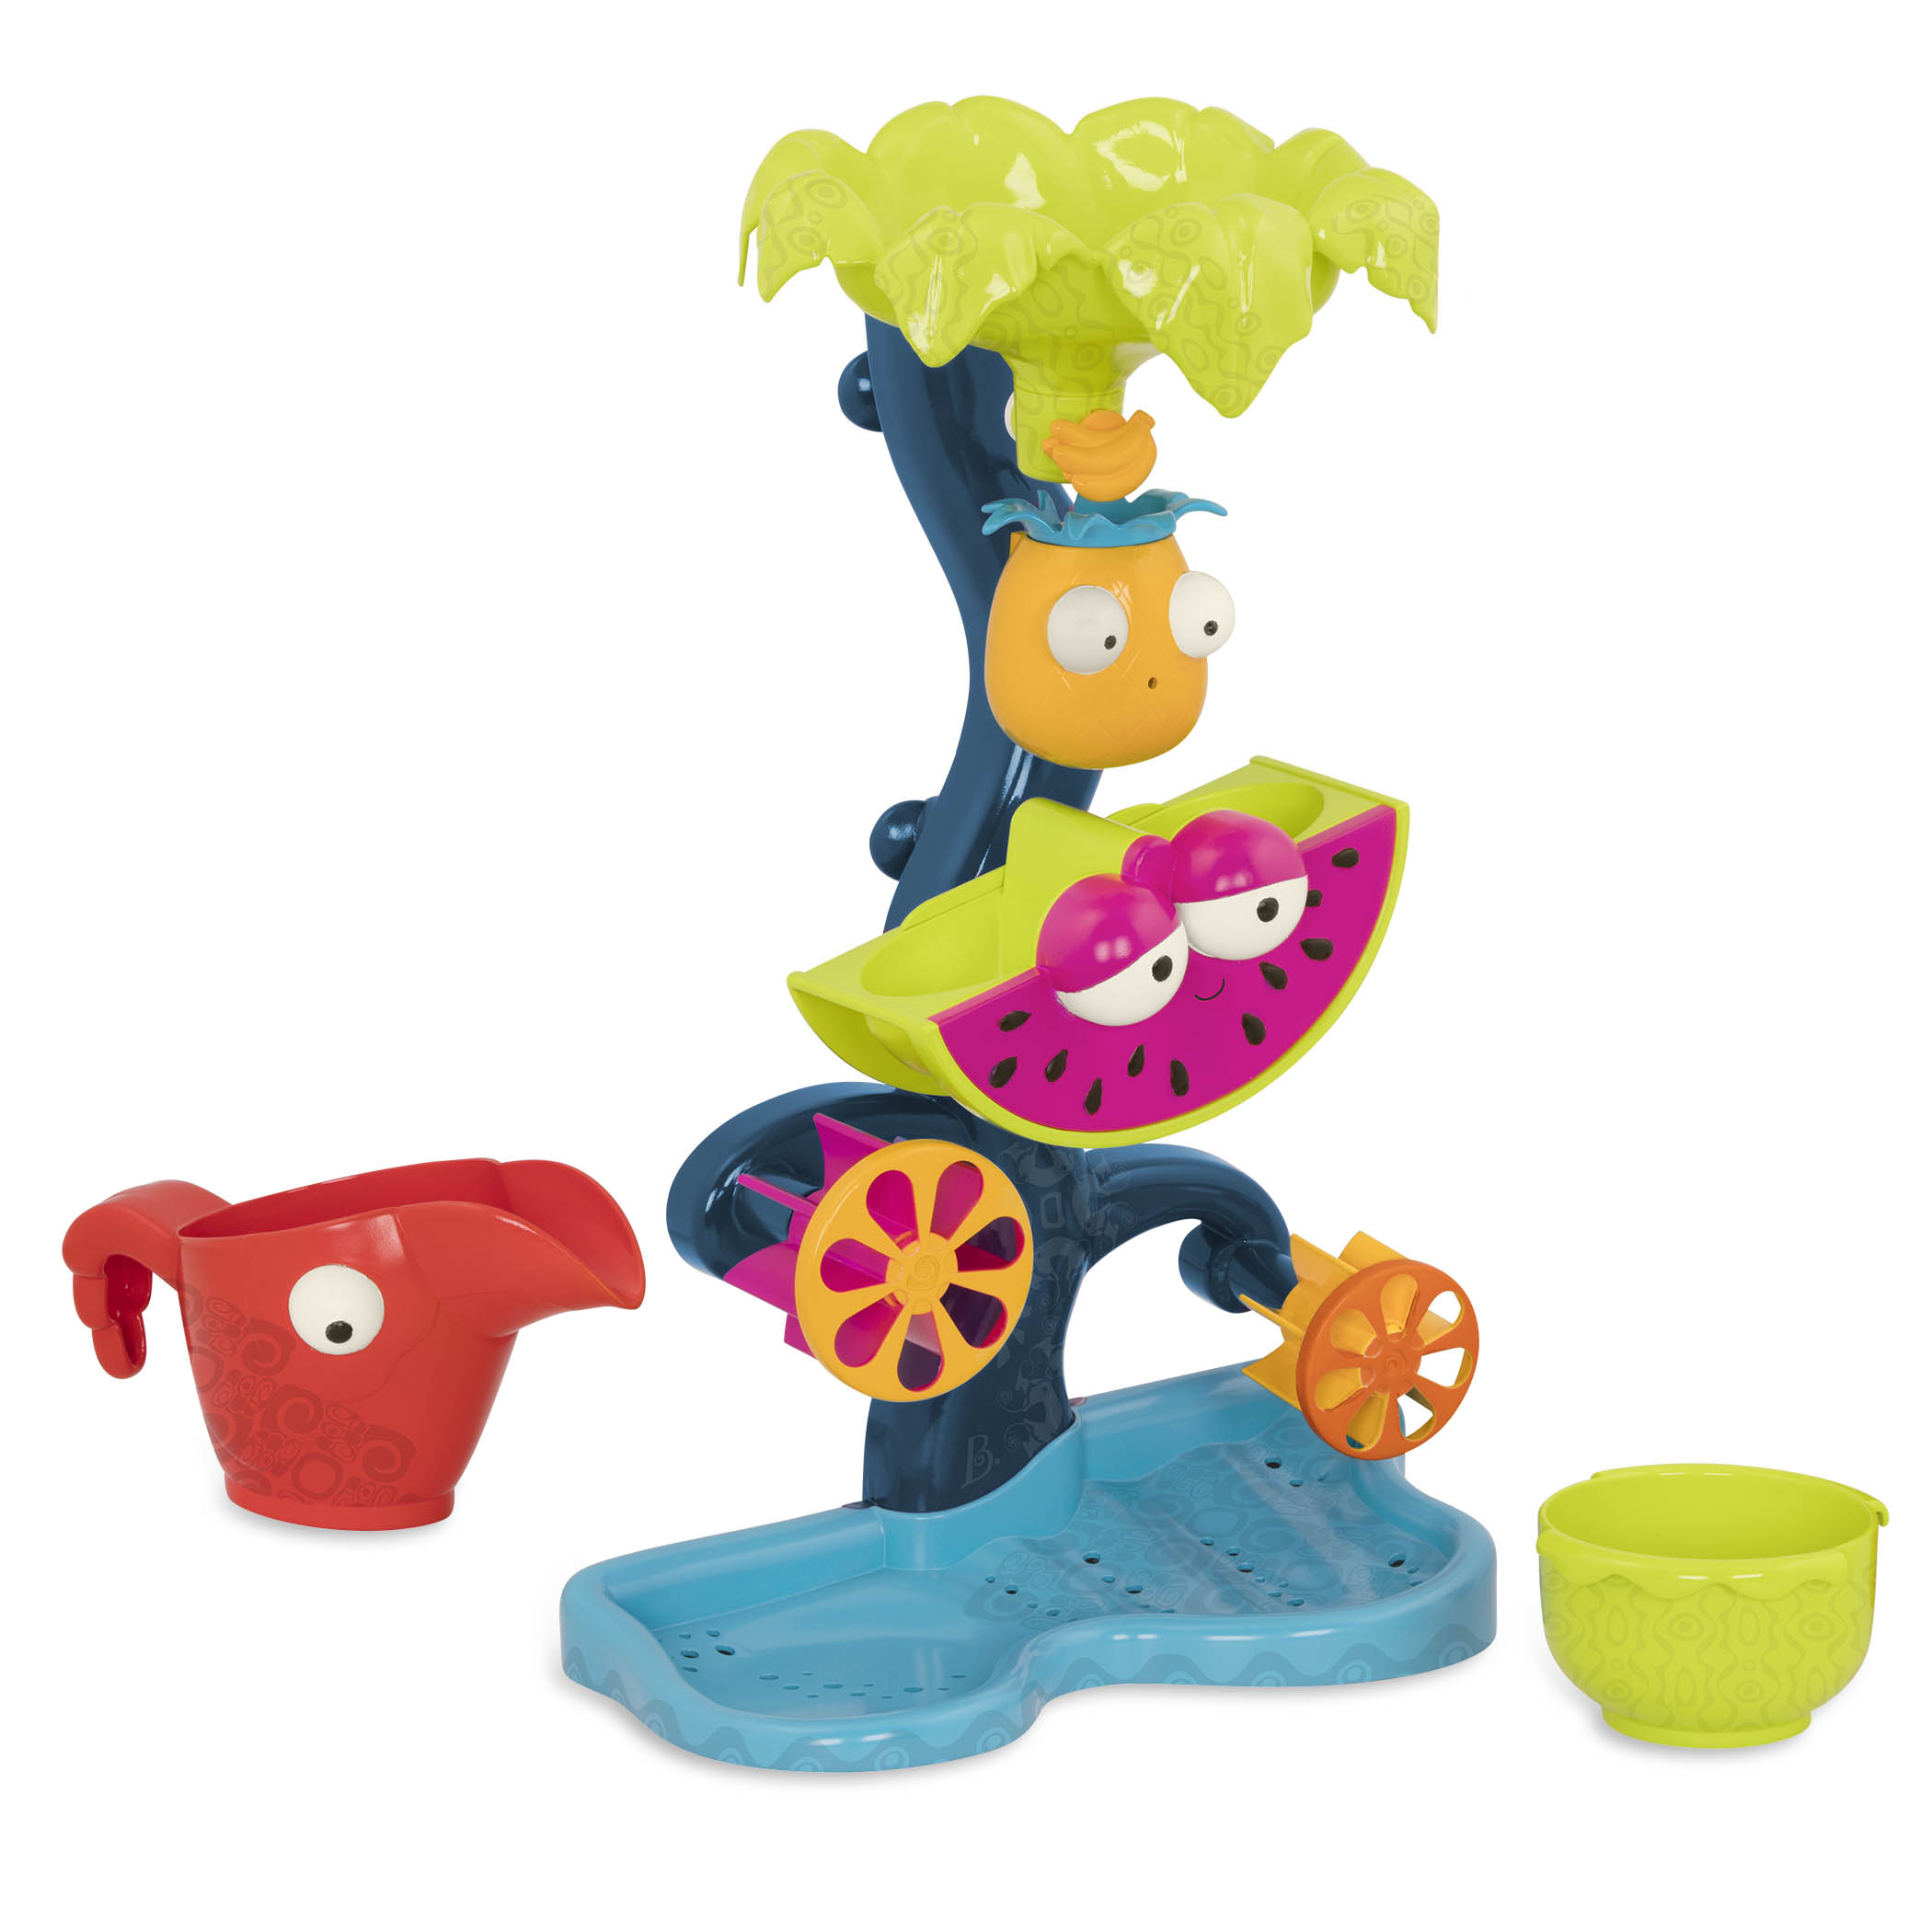 Toys starting with b clipart image library Tropical Waterfall - Water and Sand Toy - B. Summer image library